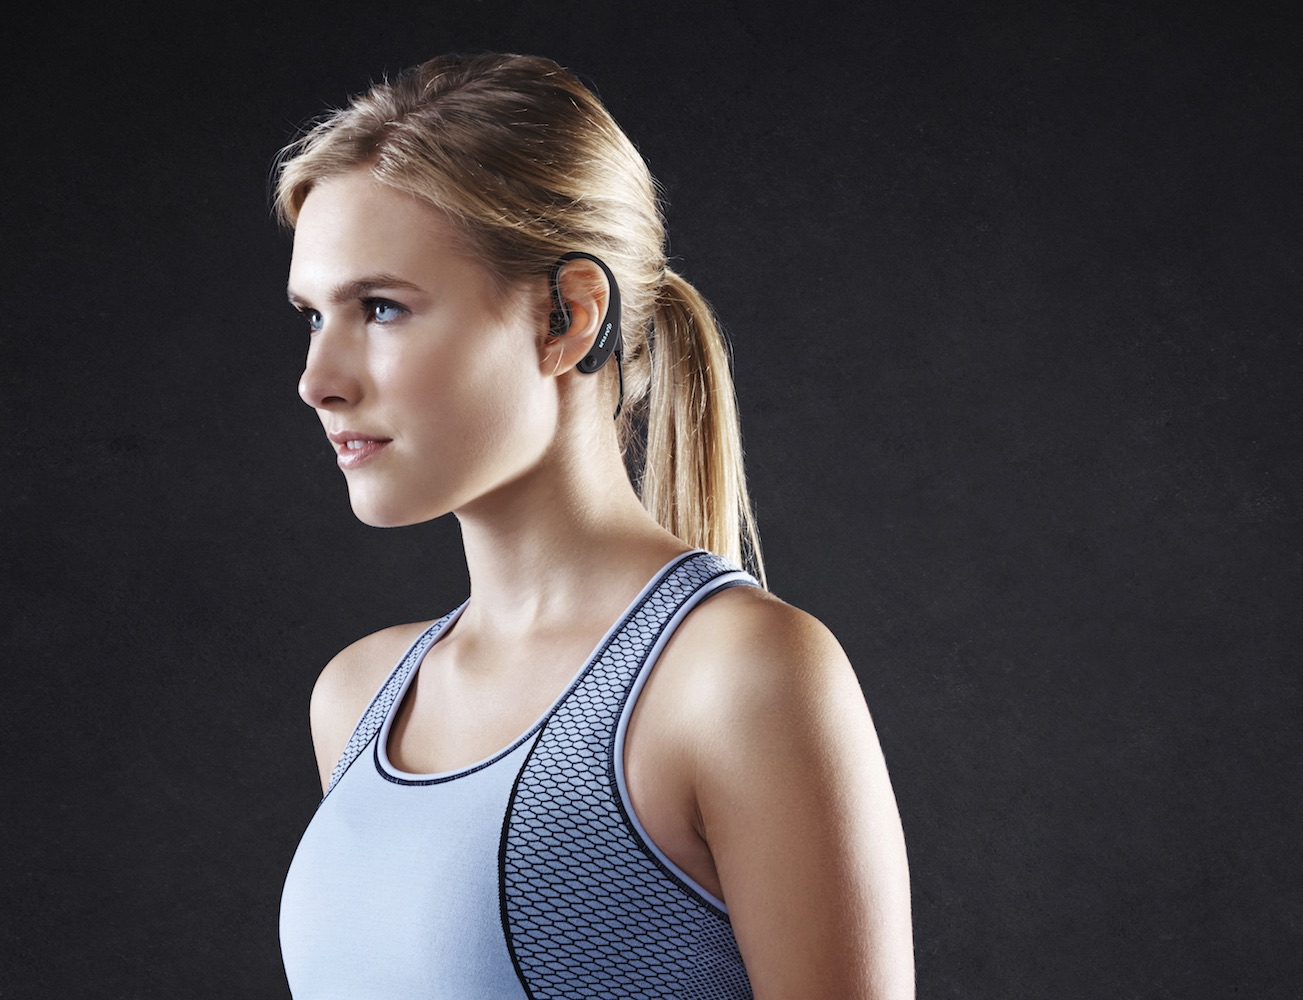 KUAI – The World's First Wearable Coach Headphones